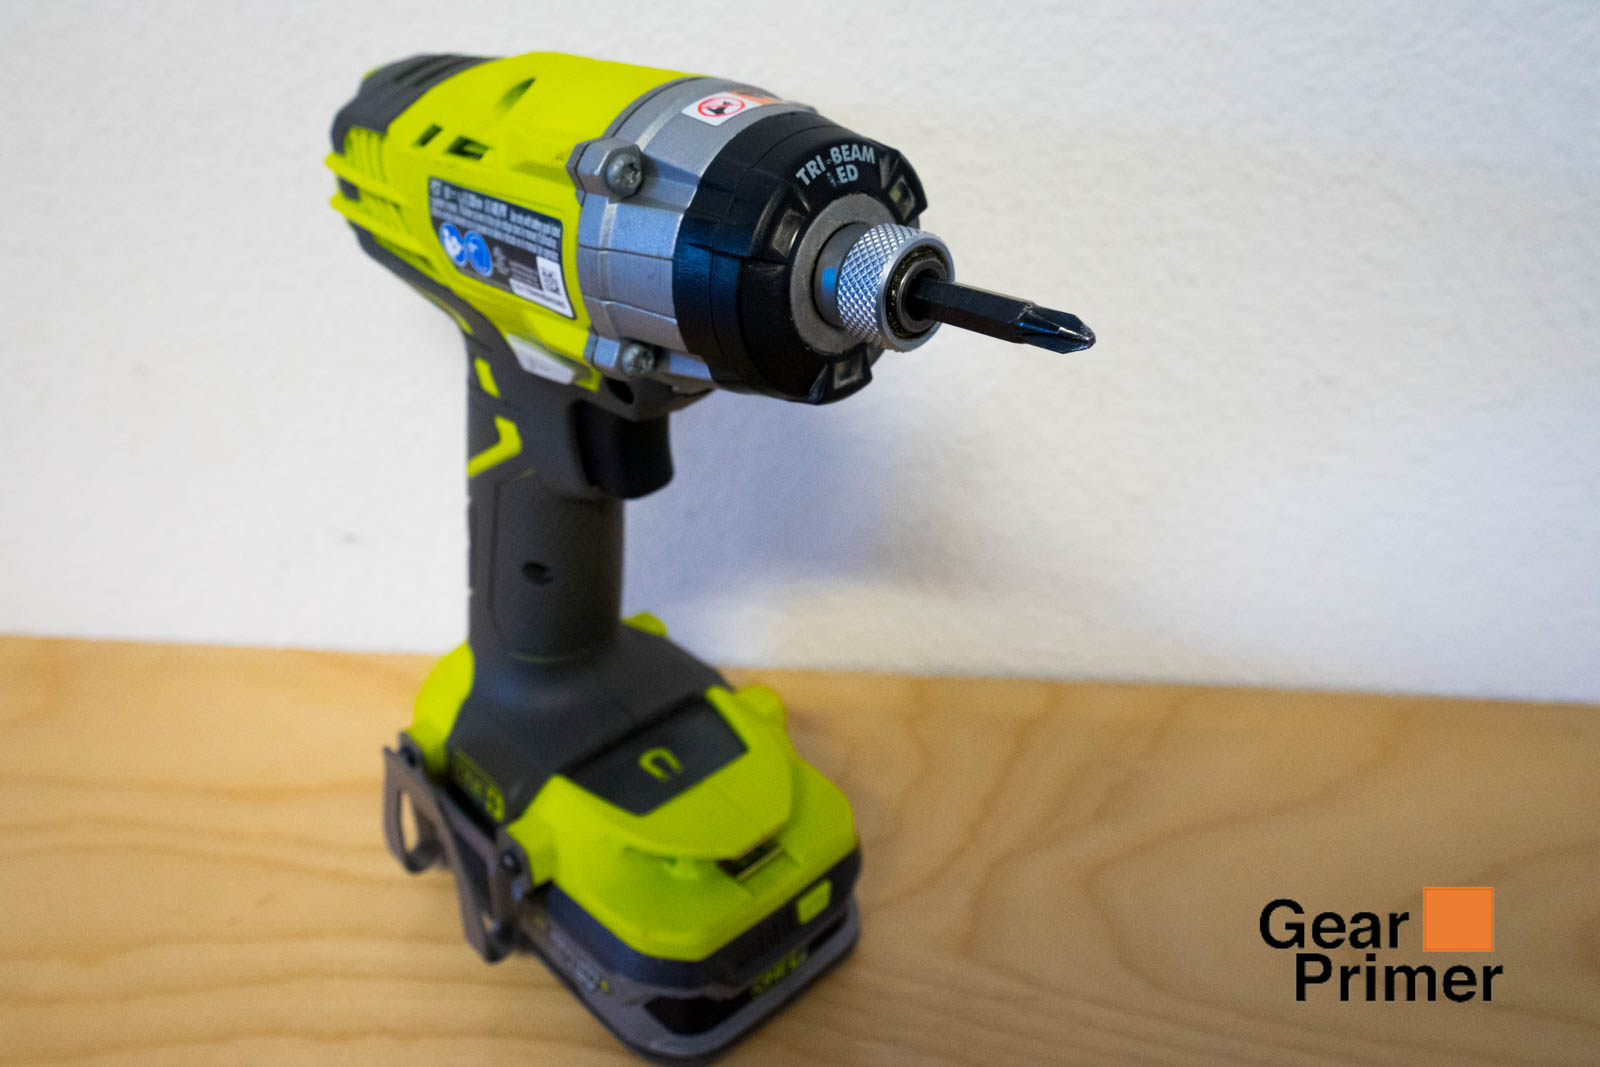 When Ryobi Released Their New 18v Tool Lineup Last Year One Of The More Exciting Releases Was P237 3 Sd Impact Driver